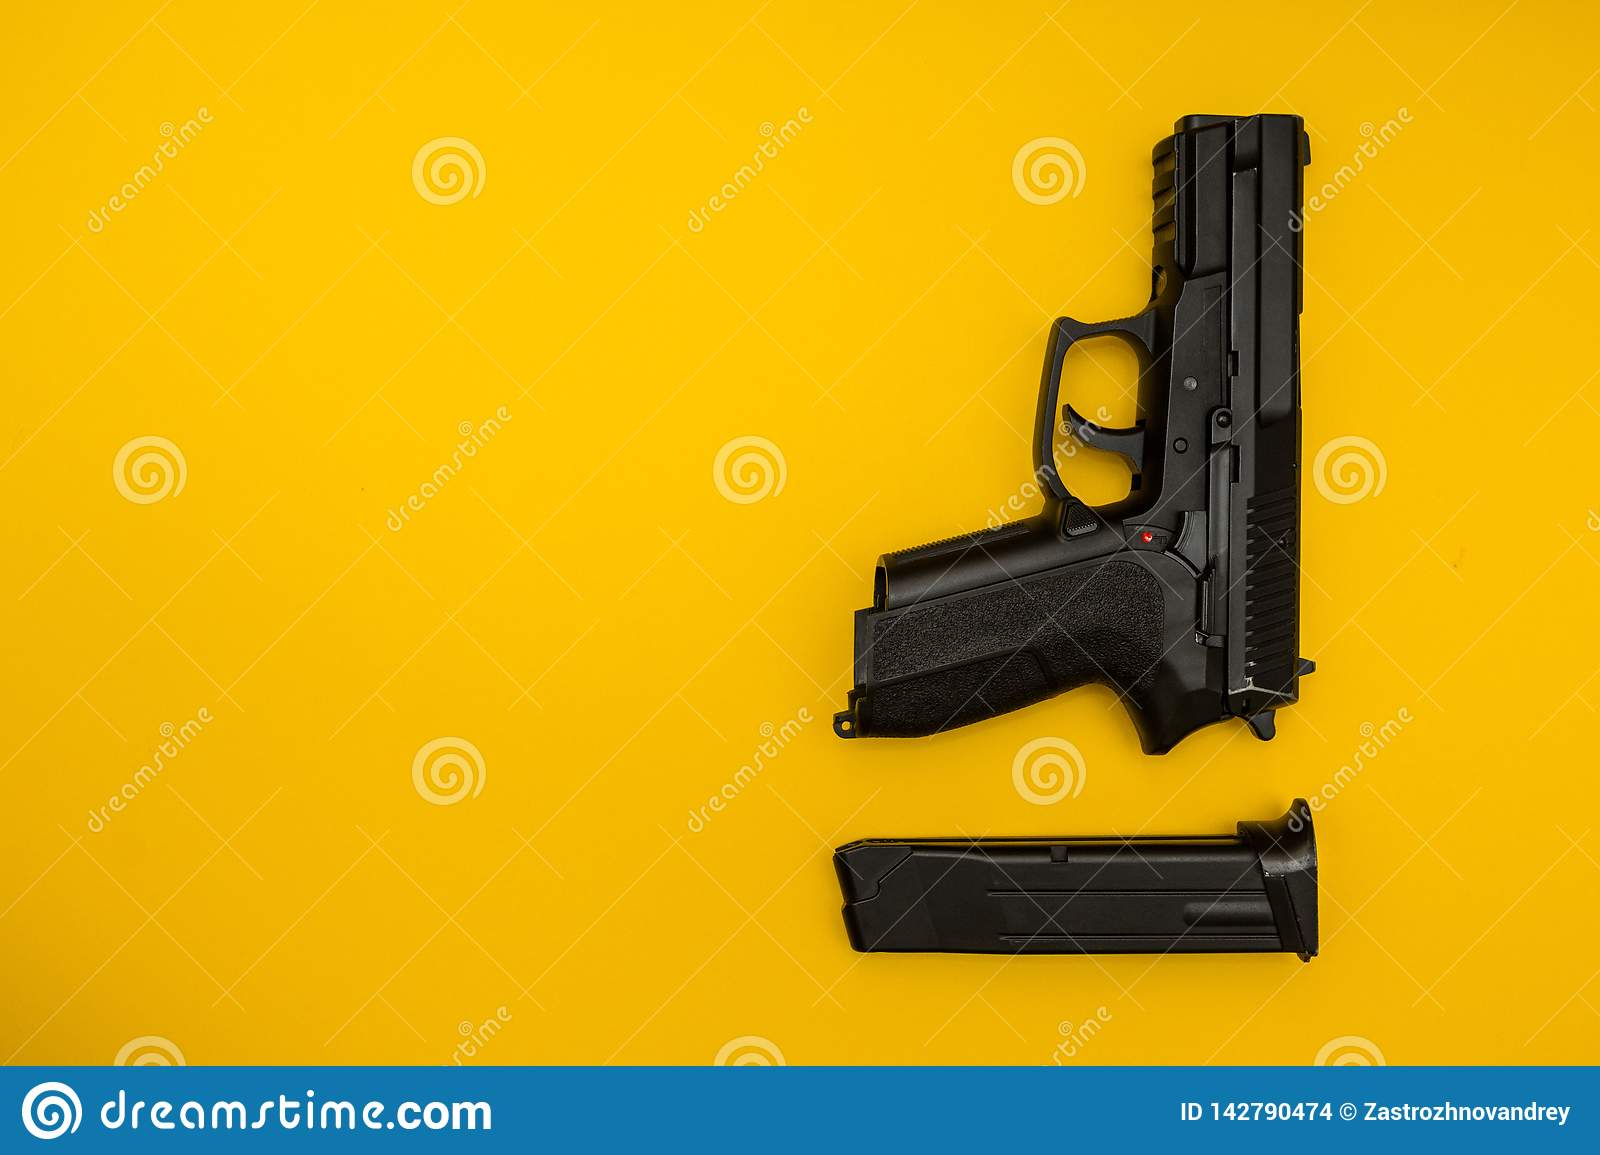 Black gun on a yellow background